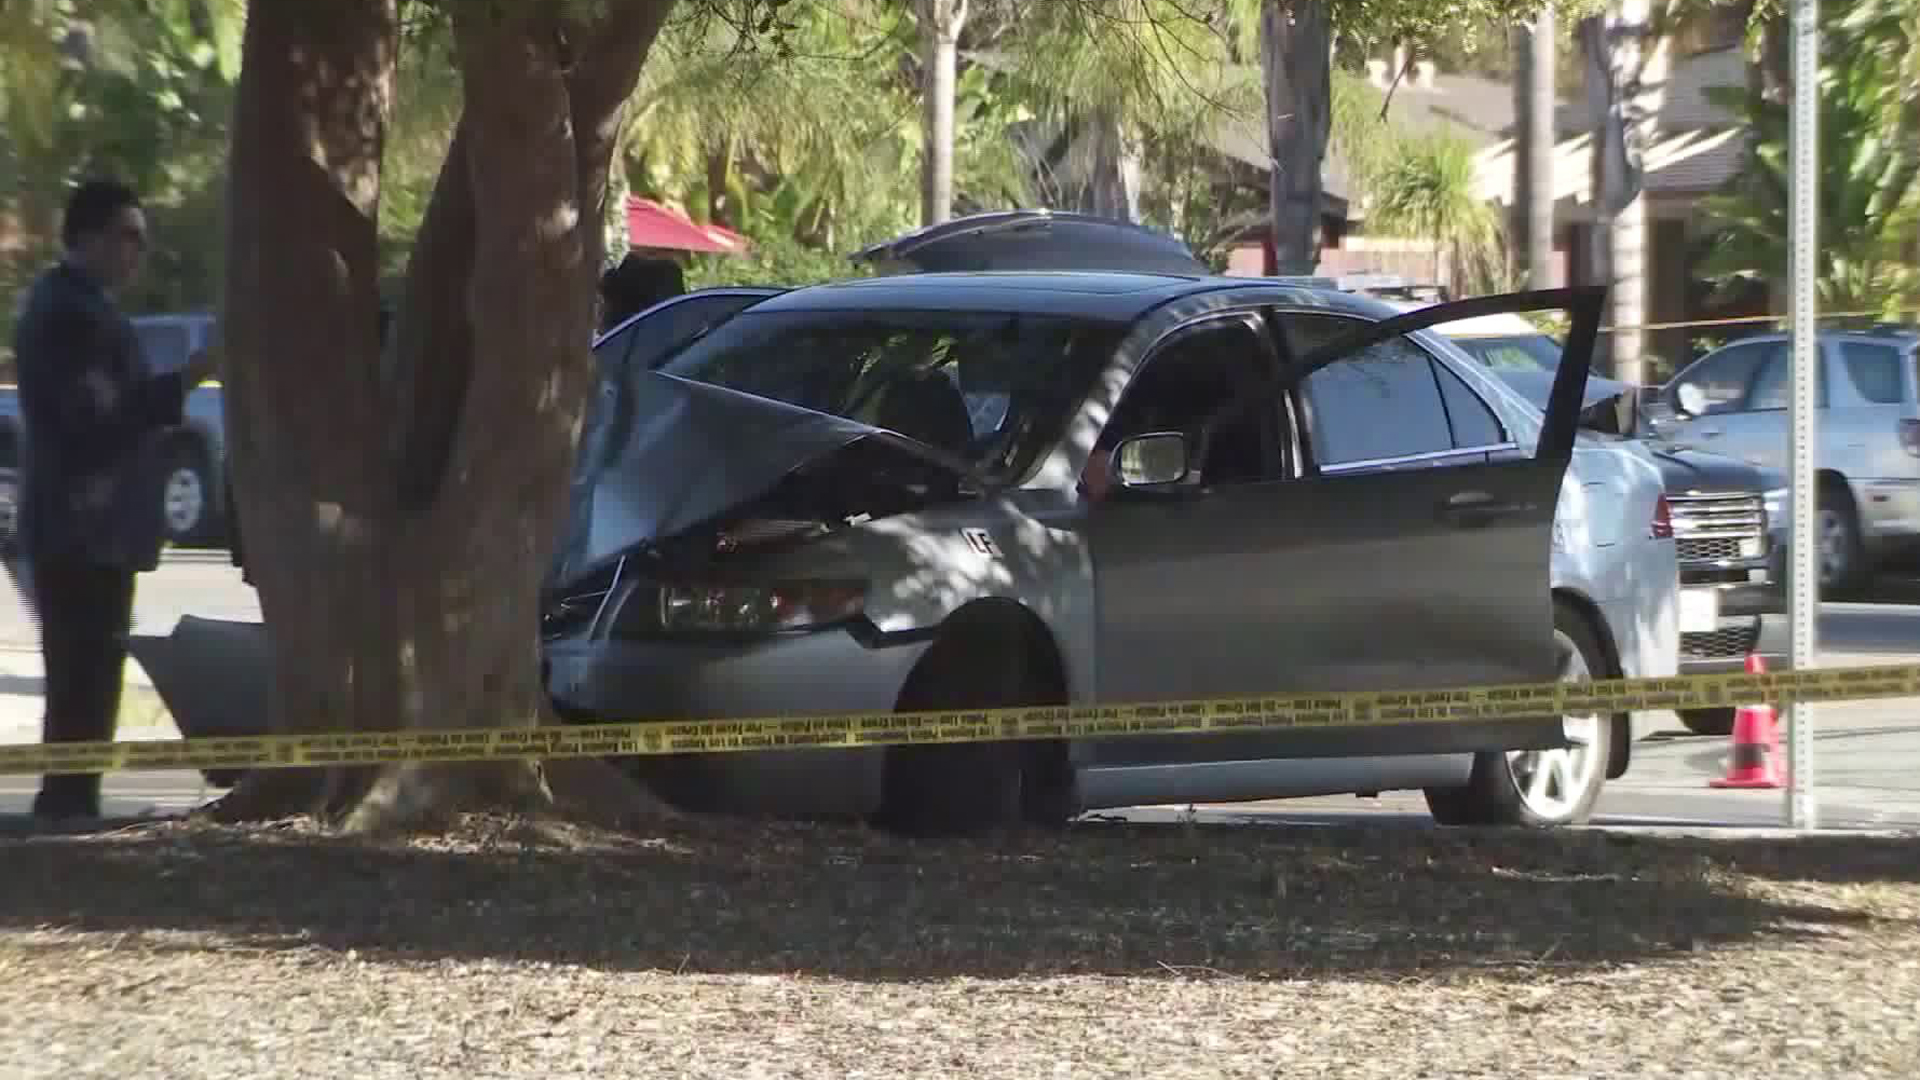 A vehicle that police were pursuing is seen crashed into a tree in Mission Hills on Oct. 20, 2019. (Credit: KTLA)